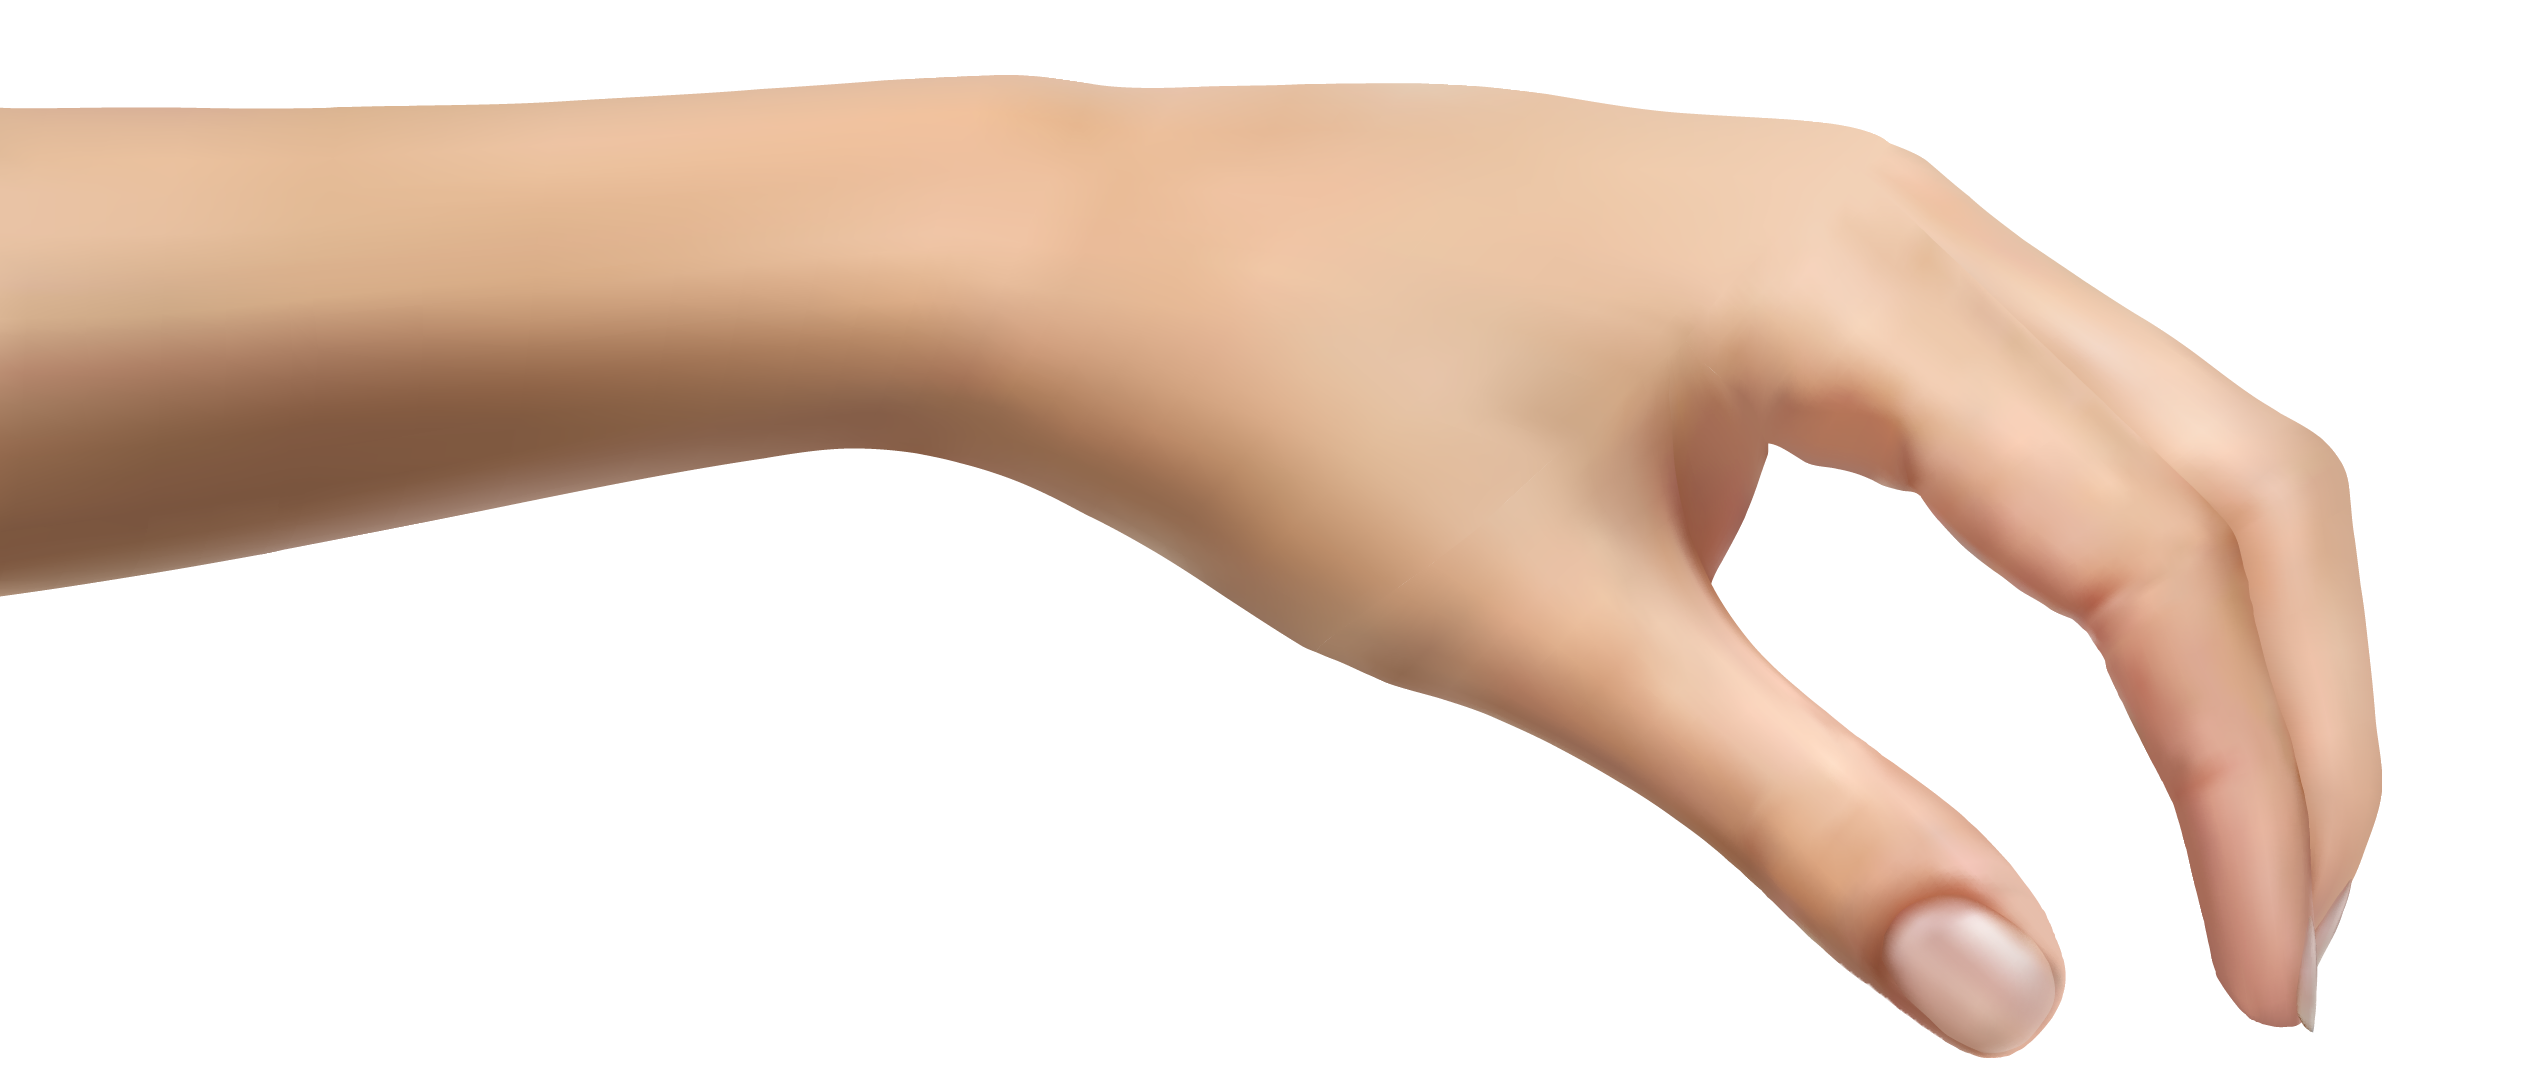 Hand holding book clipart free library Human Hand Png Clipart Picture High | jokingart.com Hand Clipart free library